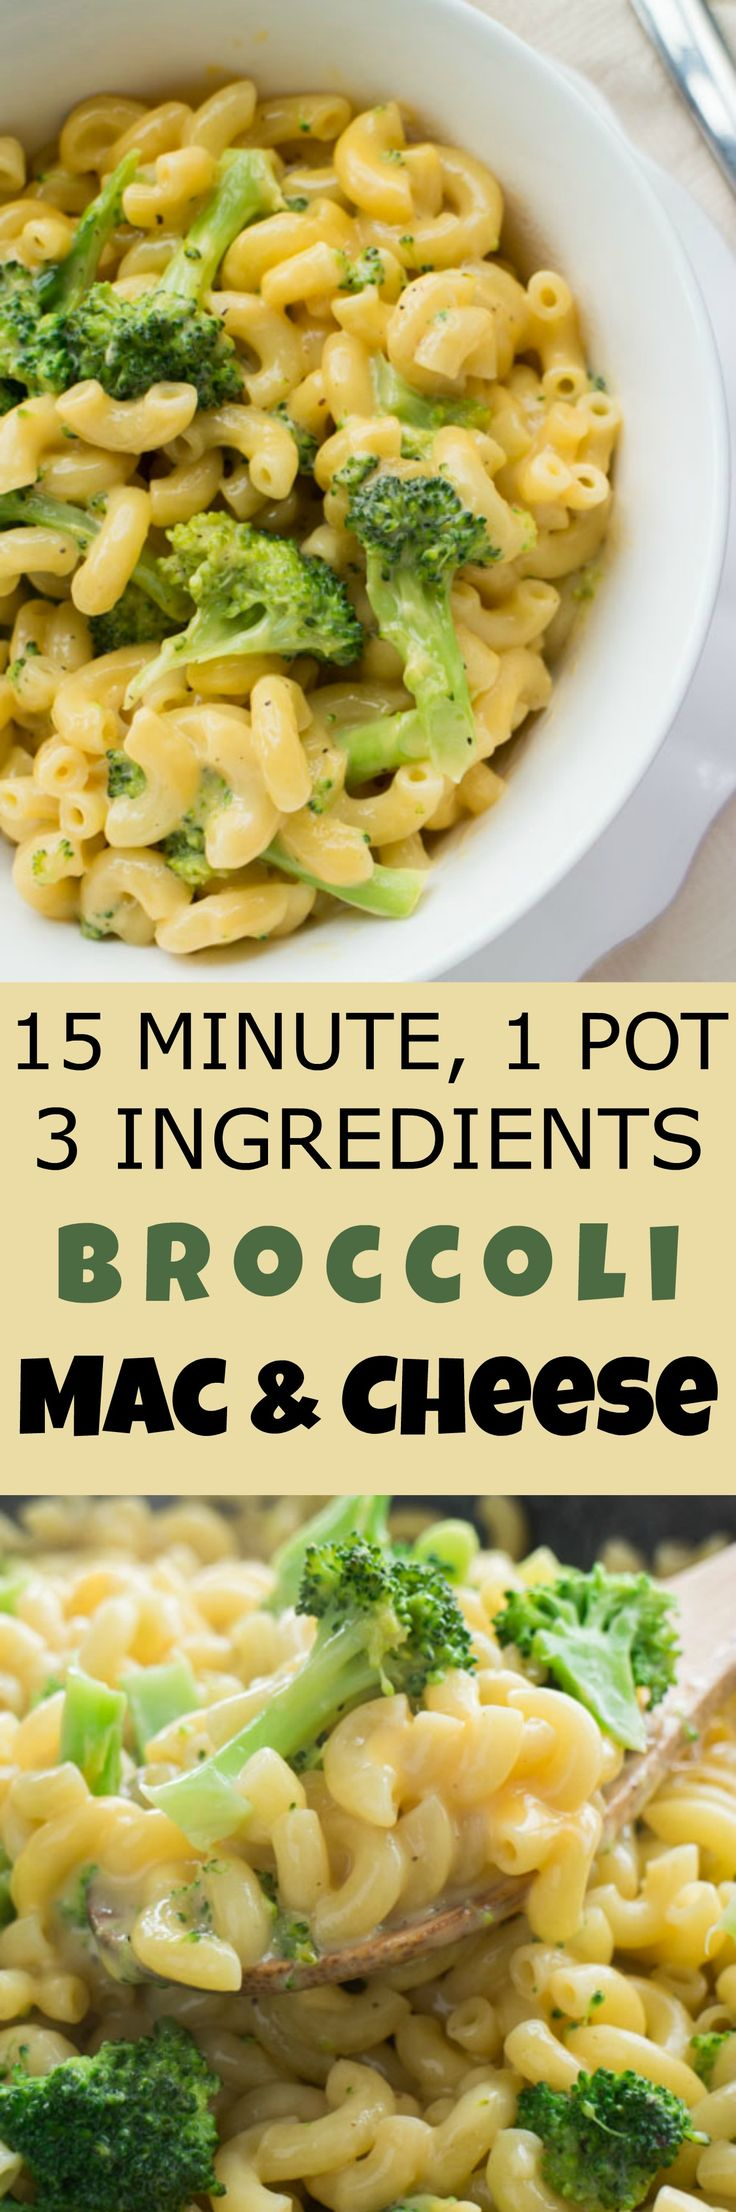 This Stovetop Broccoli Macaroni and Cheese is made with 1 pot, 3 ingredients and only takes 15 minutes to make. Grab your pasta, Velveeta cheese and broccoli and make this easy creamy homemade mac and cheese for dinner soon! Kids will love how delicious i